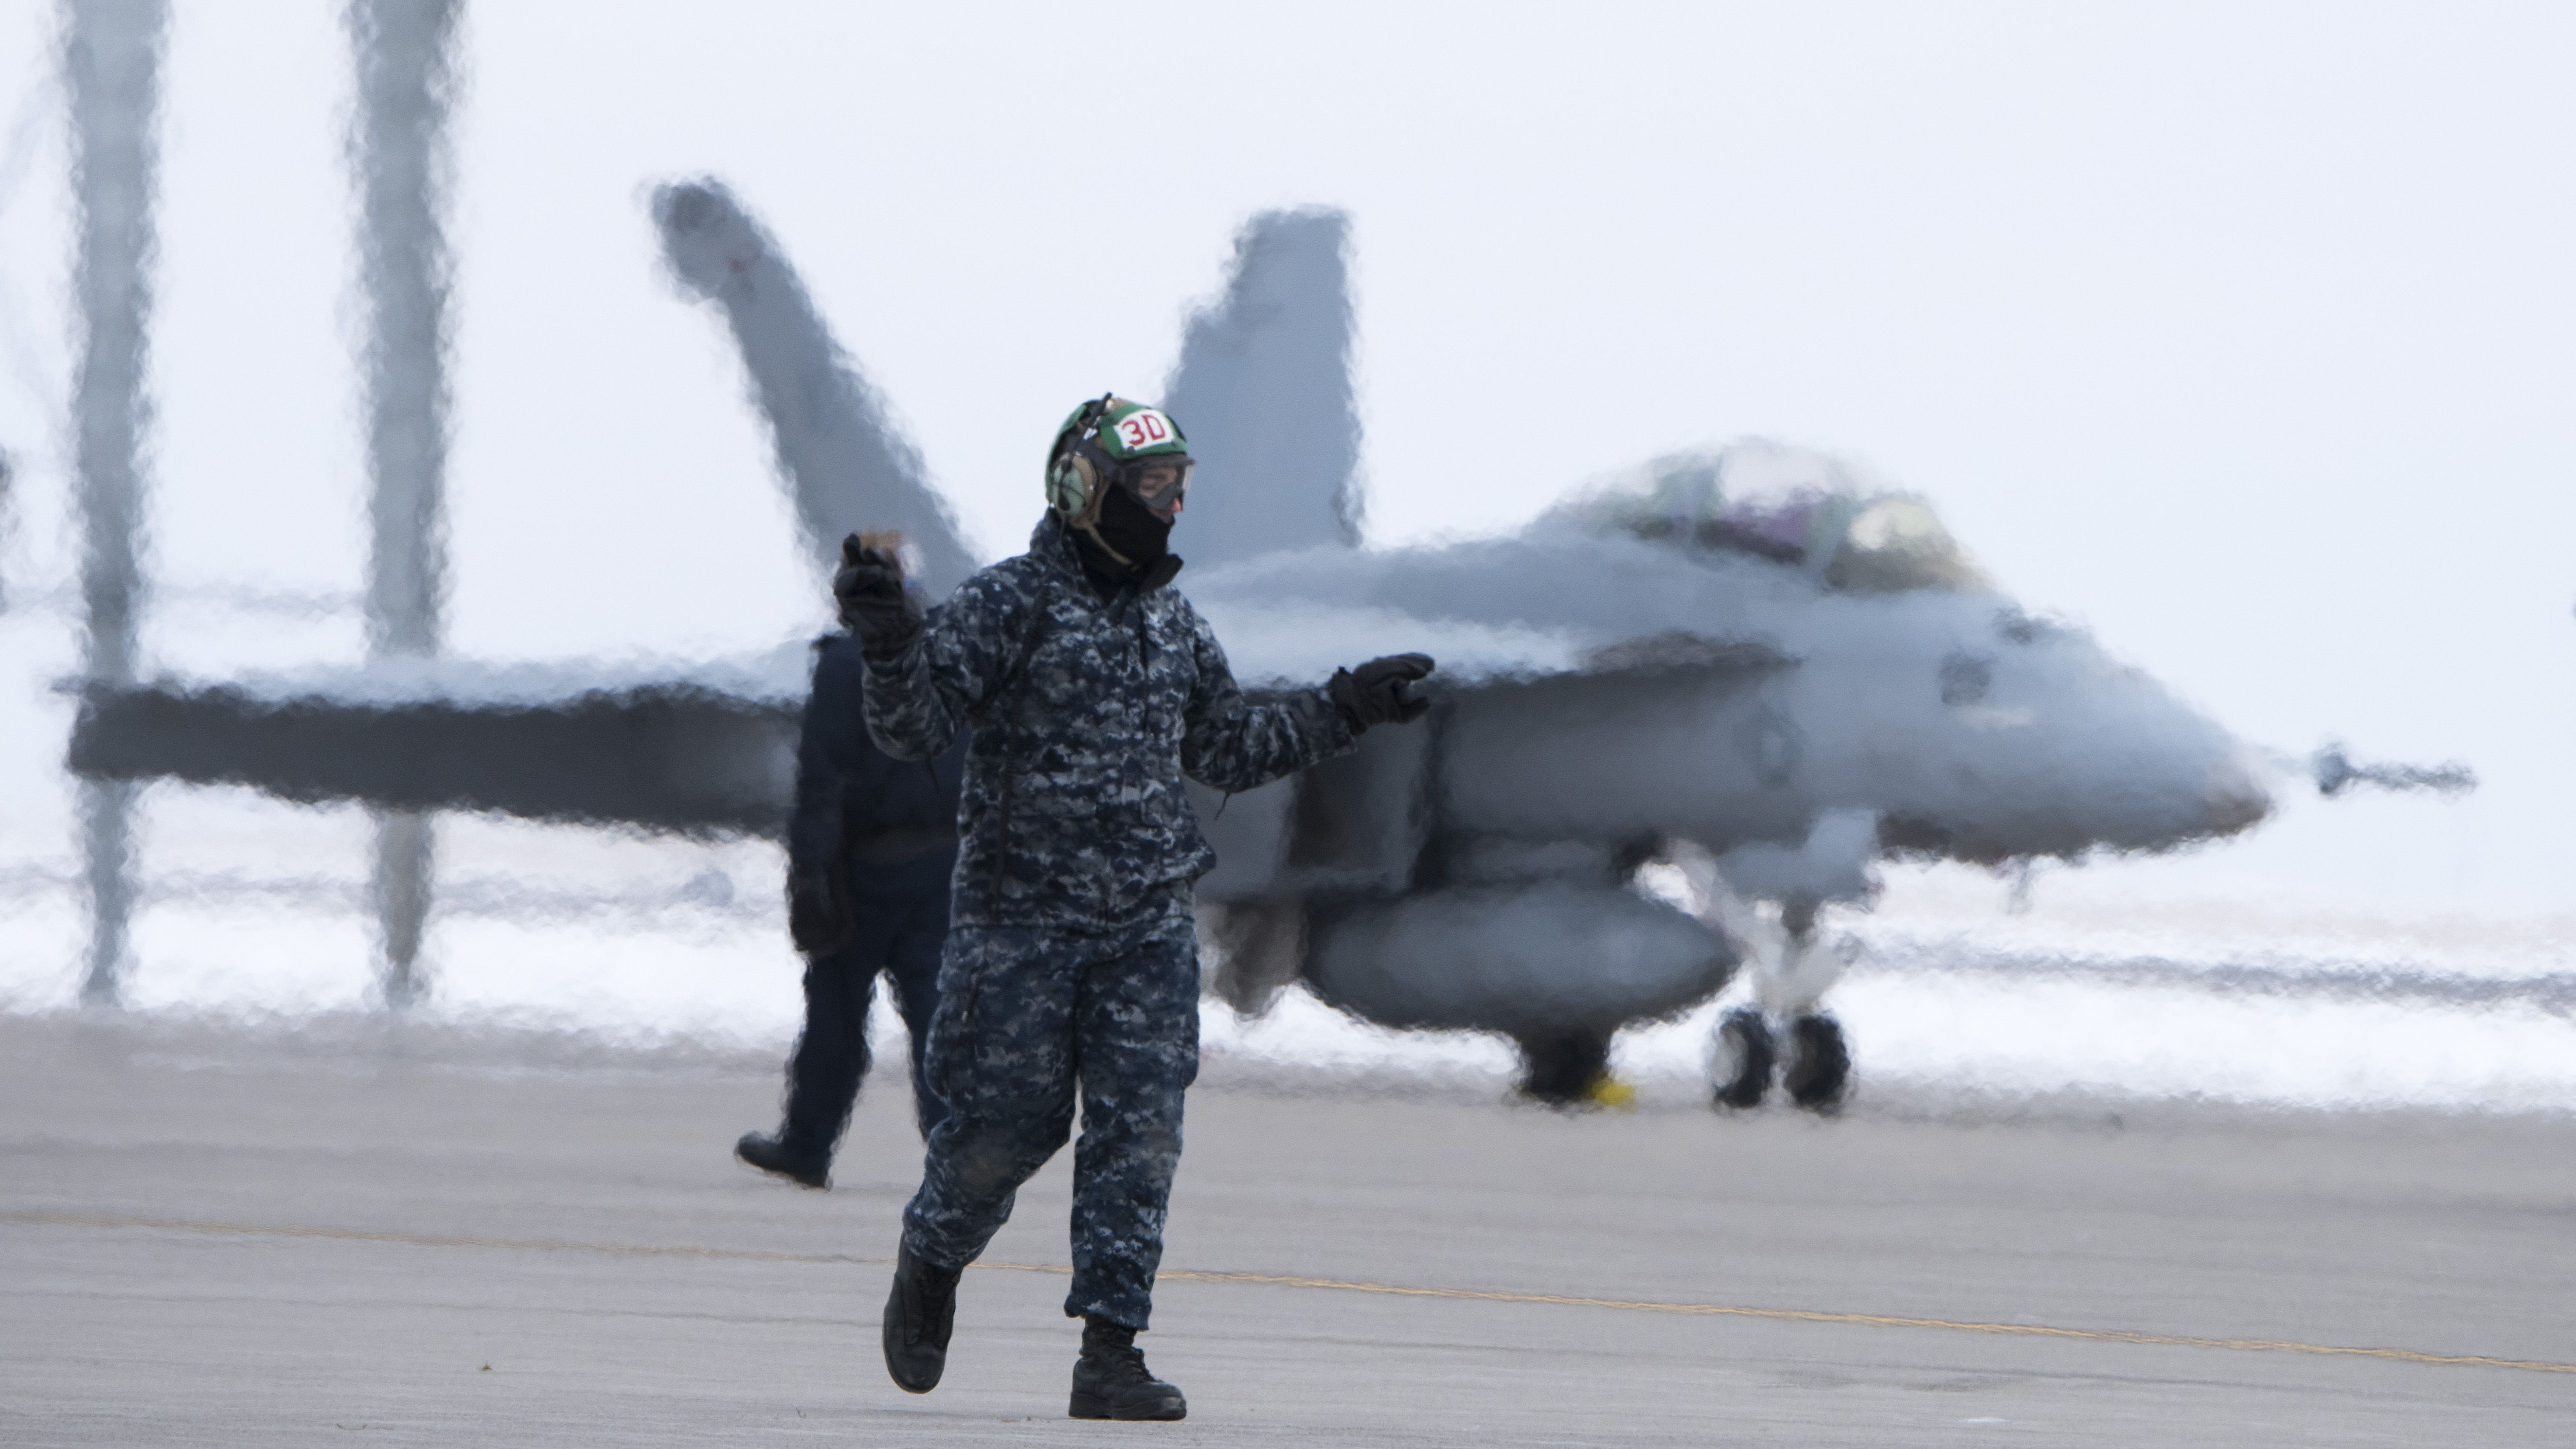 A U.S. Navy maintainer with Strike Fighter Squadron 106 marshals an F/A-18 Hornet out of a parking position on the flightline Dec. 2, 2015, at Mountain Home Air Force Base, Idaho. (U.S. Air Force photo by Senior Airman Jeremy L. Mosier/RELEASED)